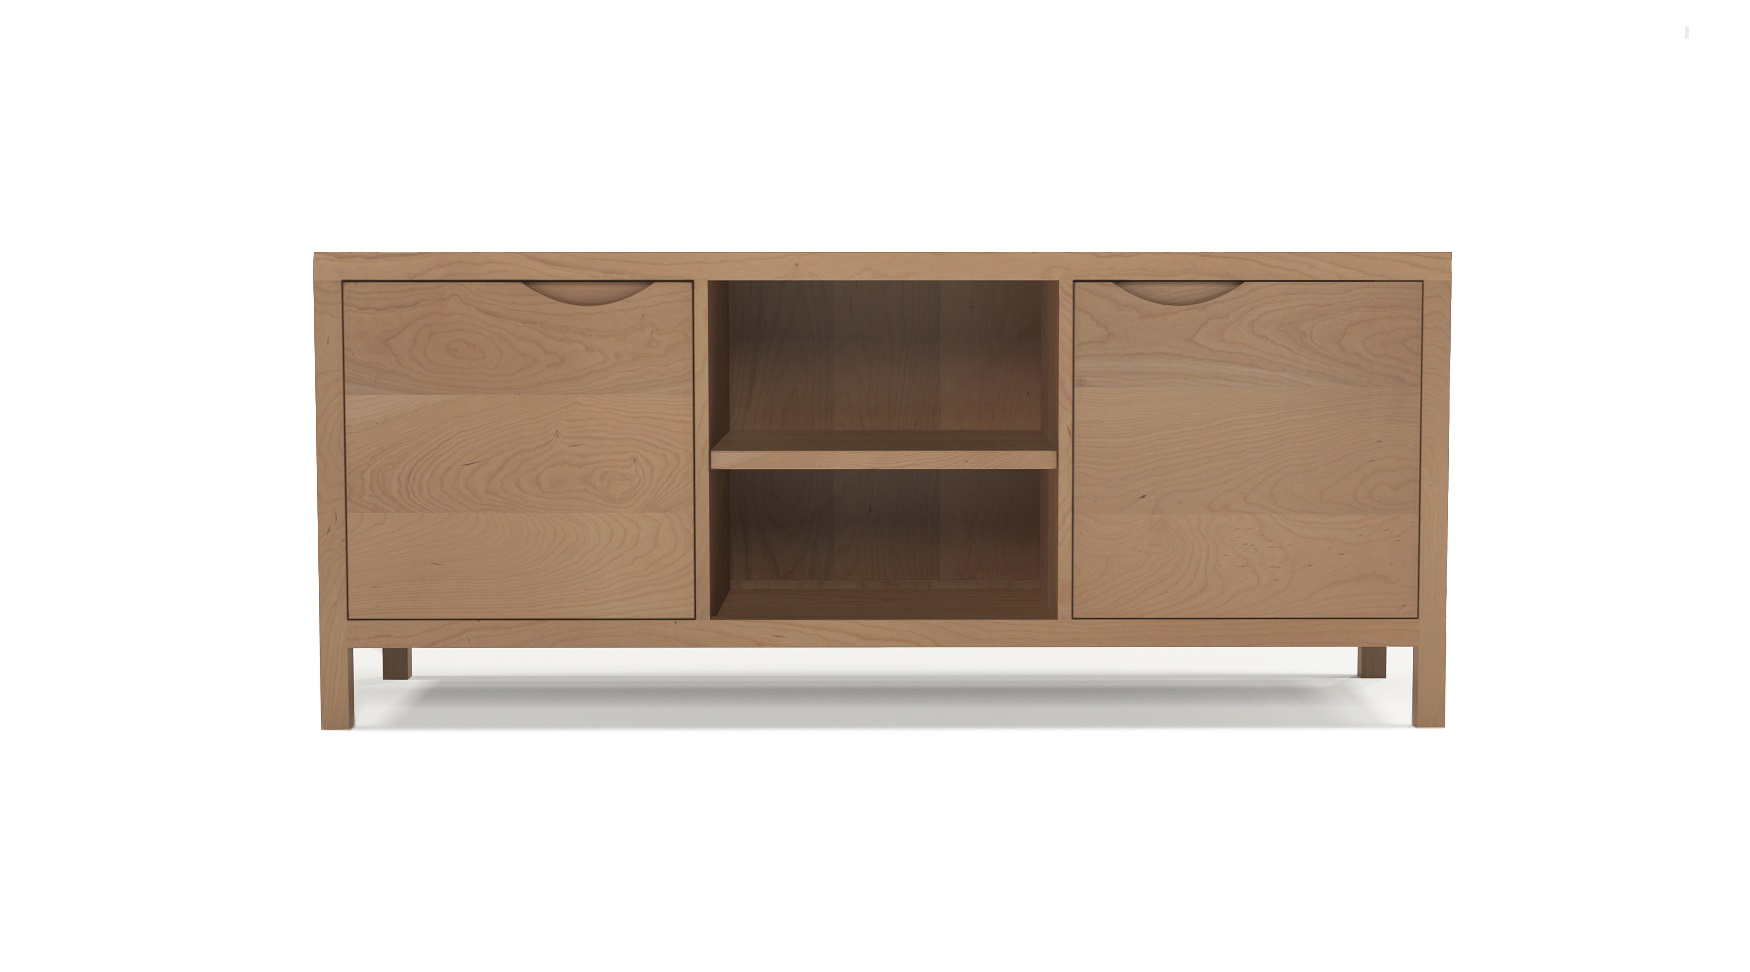 Cherry wooden furniture media cabinet with integrated handles in the two doors